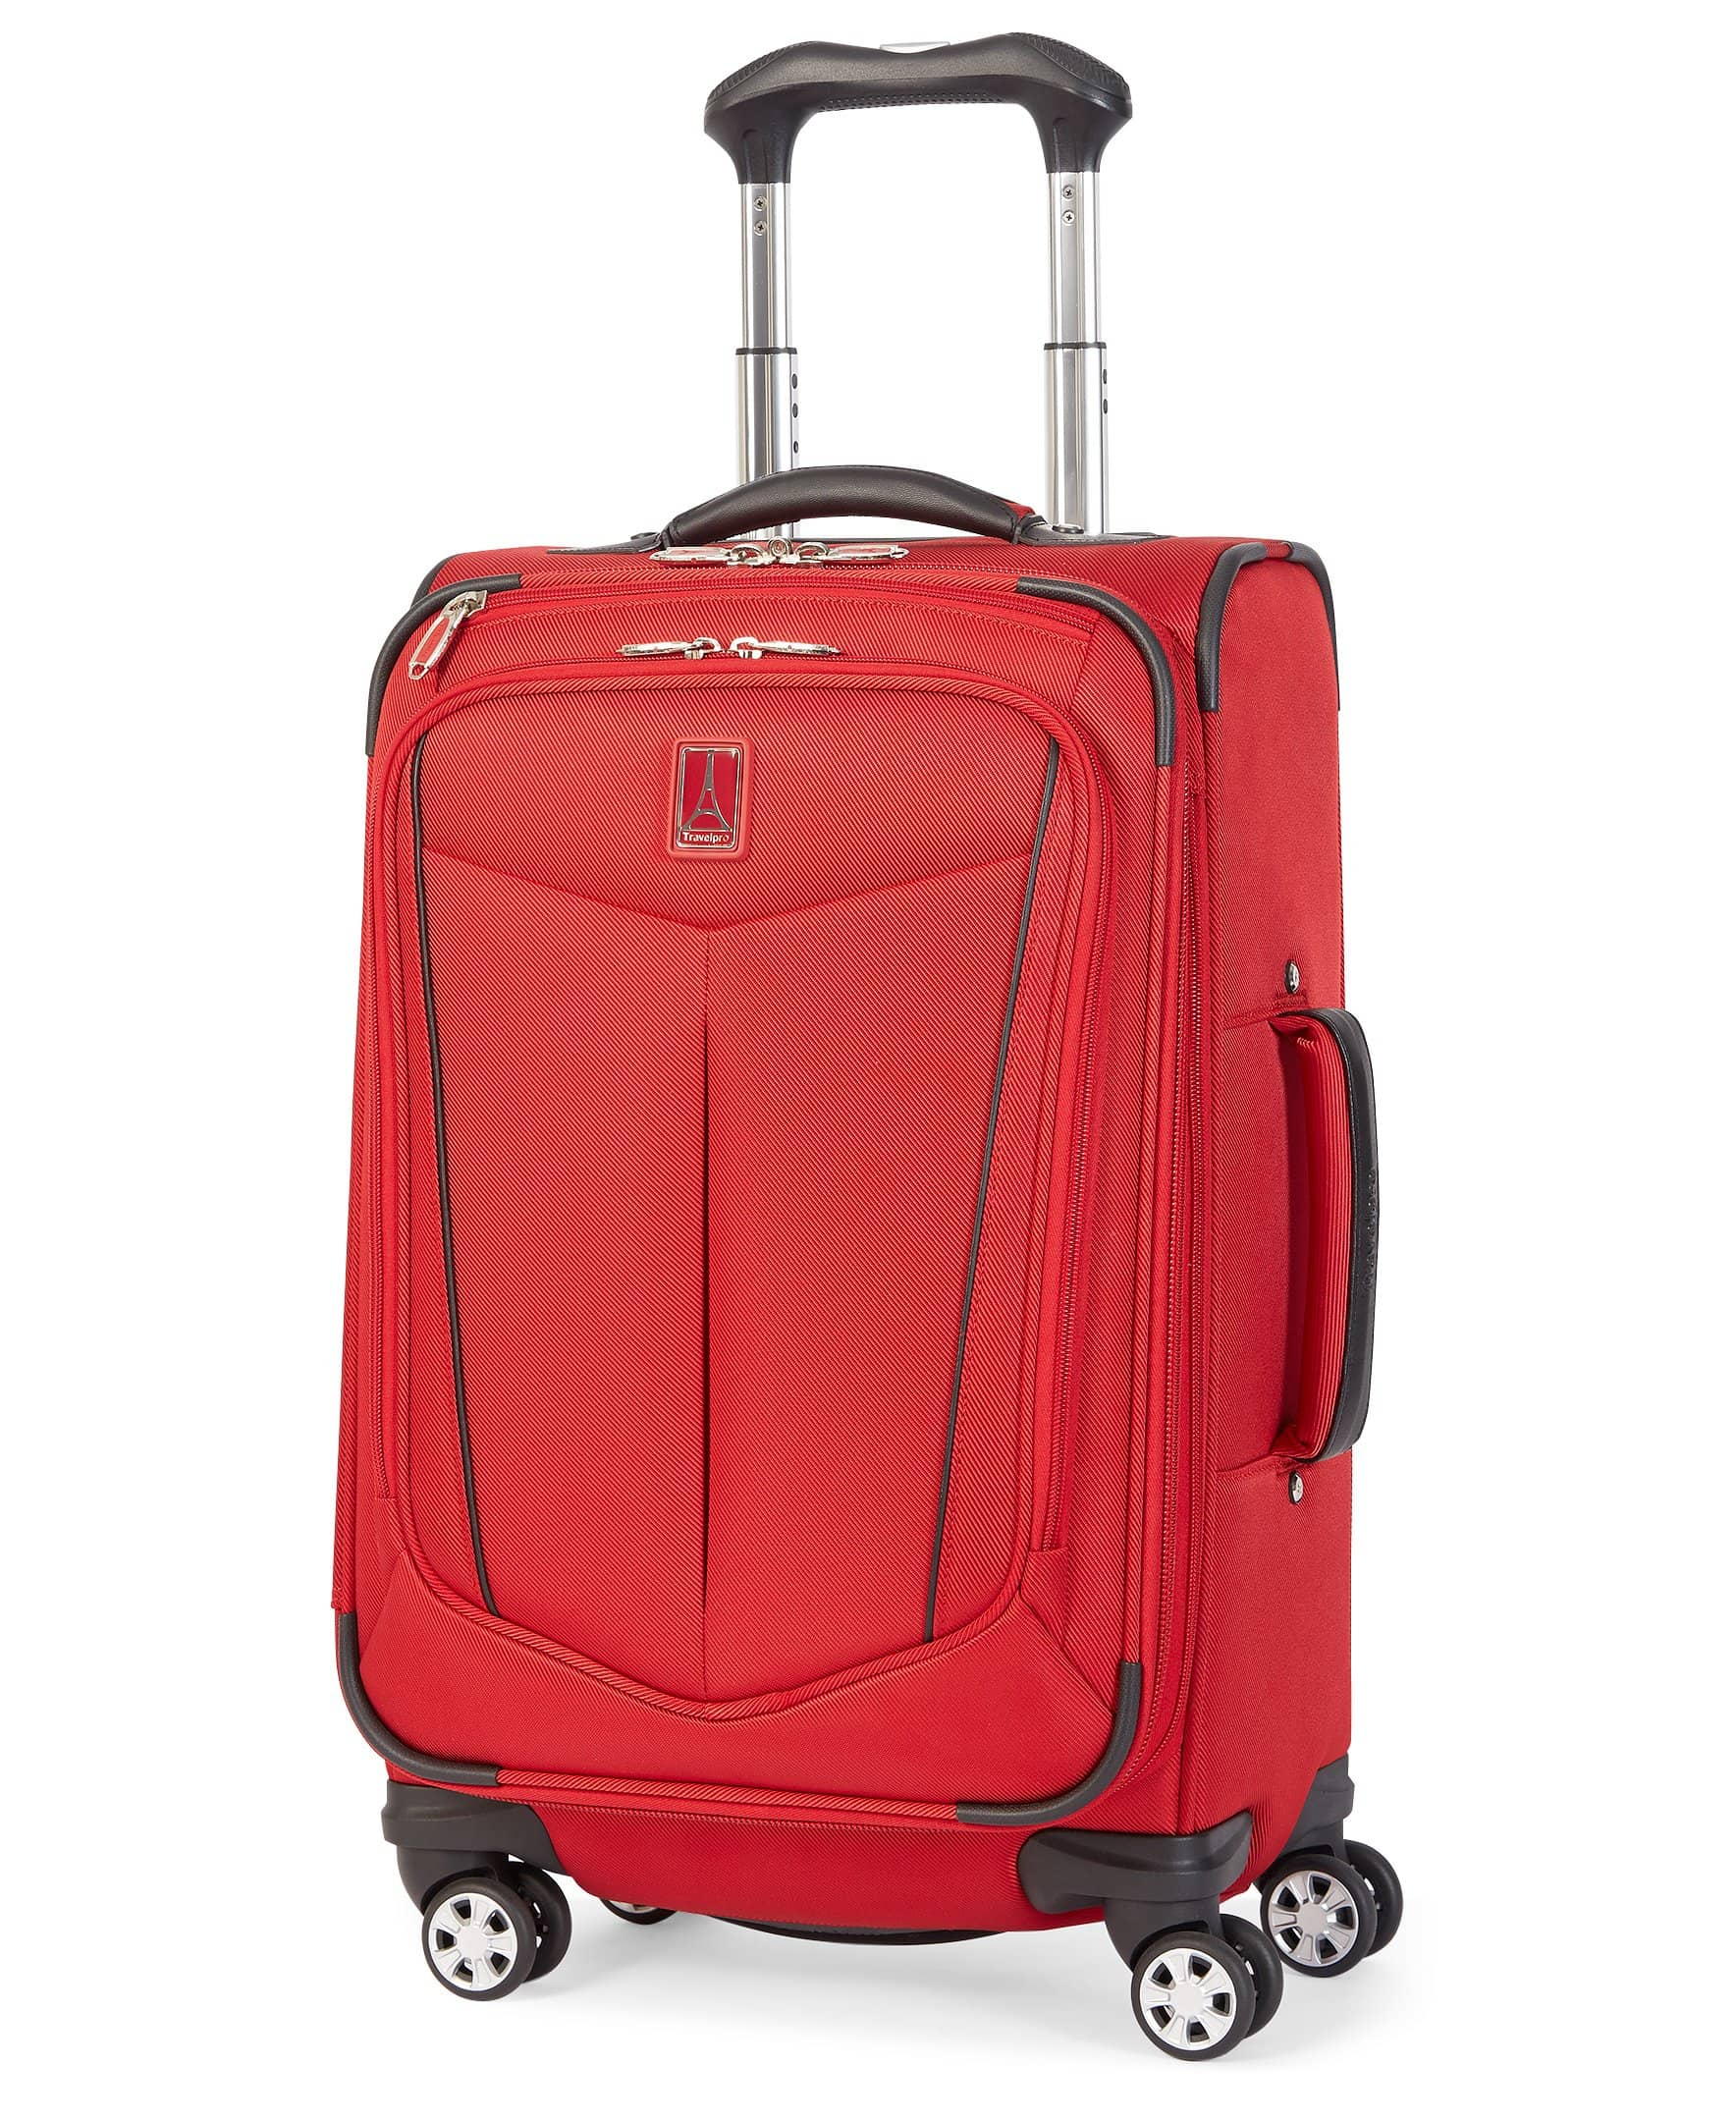 "Travelpro Nuance™ 21"" Expandable Spinner Scarlet Red"